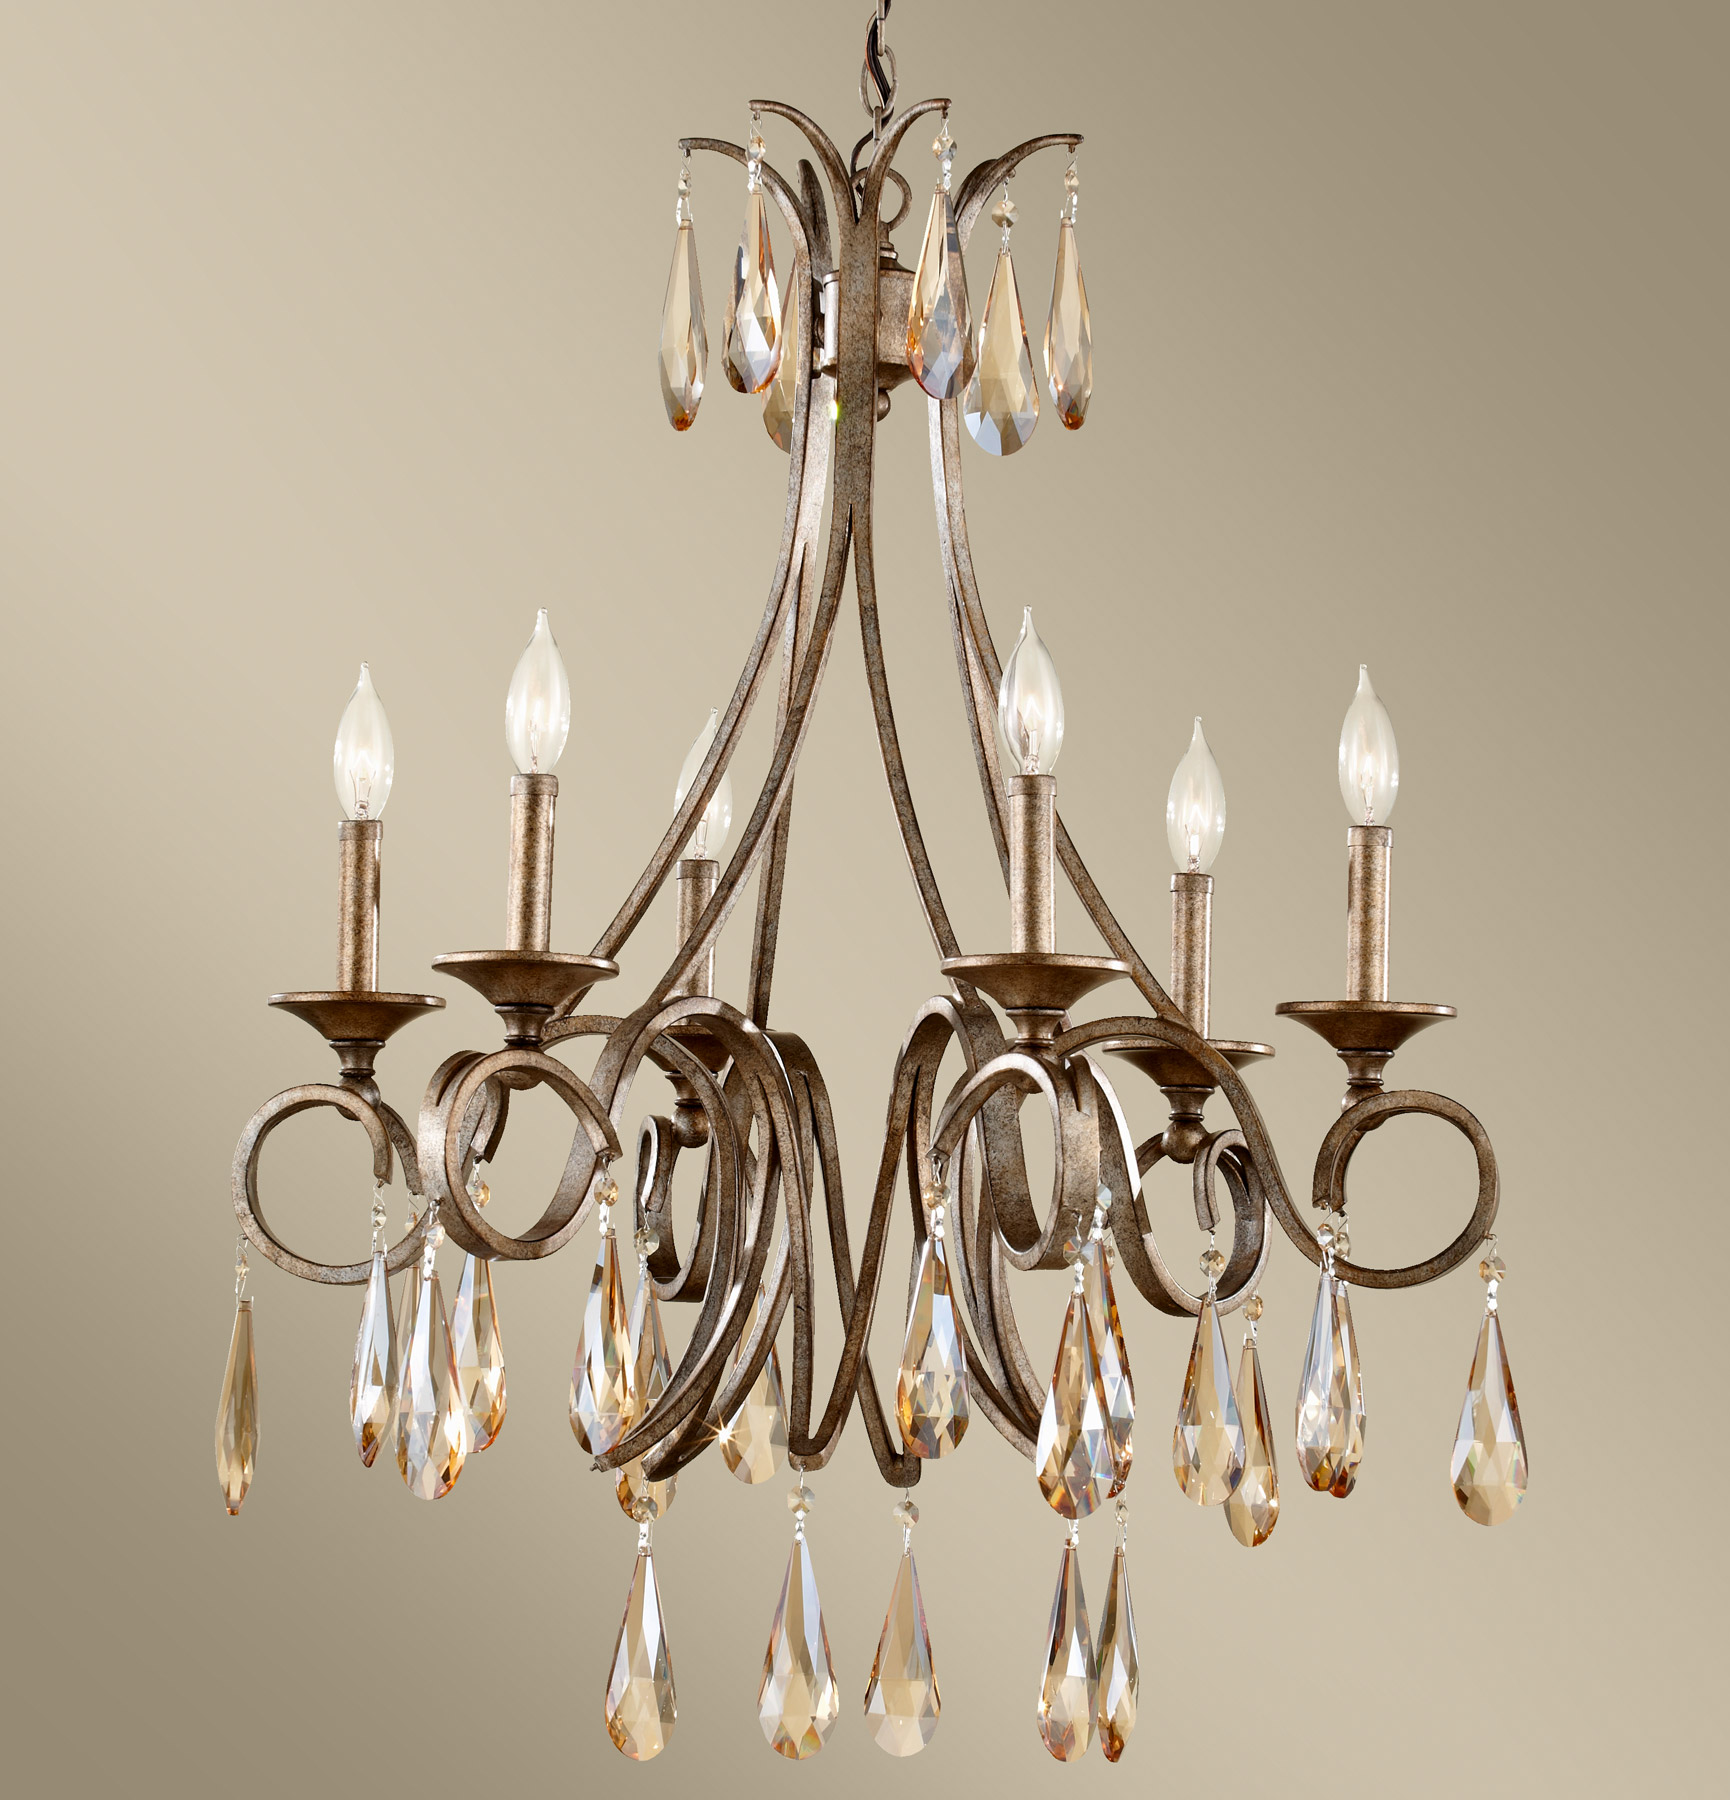 Feiss F2636 6GIS Crystal Reina Six Light Chandelier